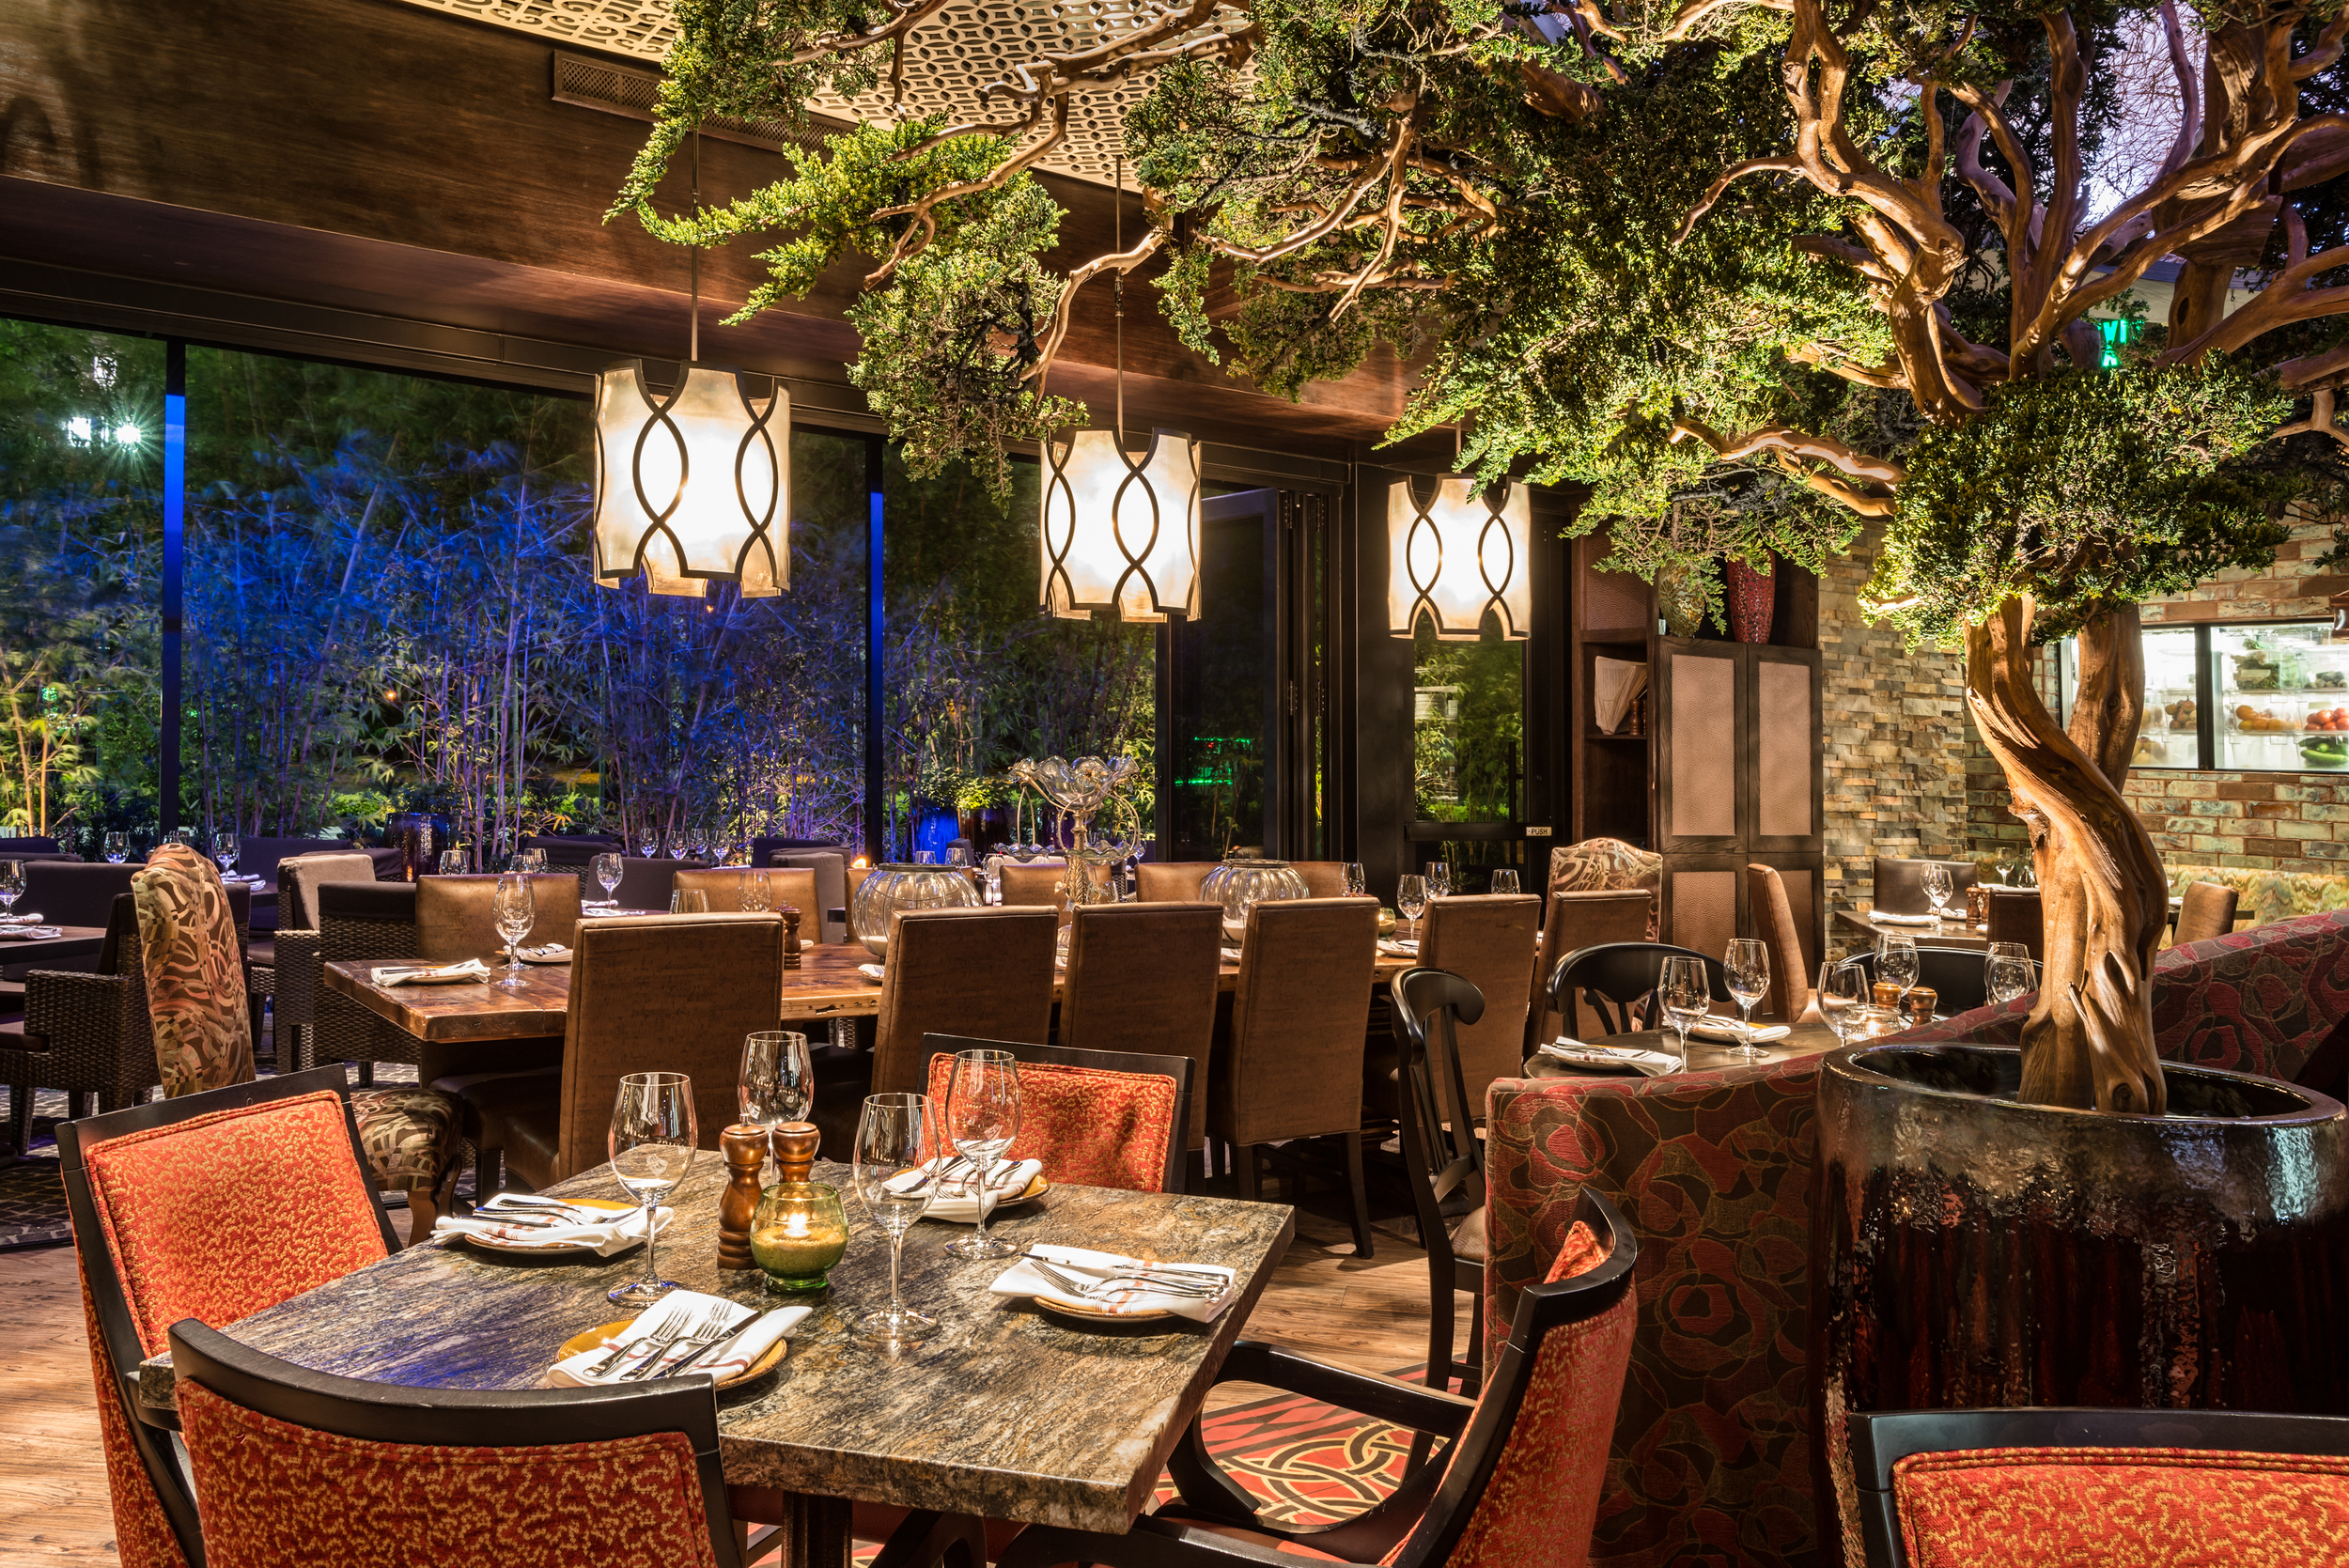 2290-Edit_West Patio and Dining Room_Tanzy Boca Raton.jpg